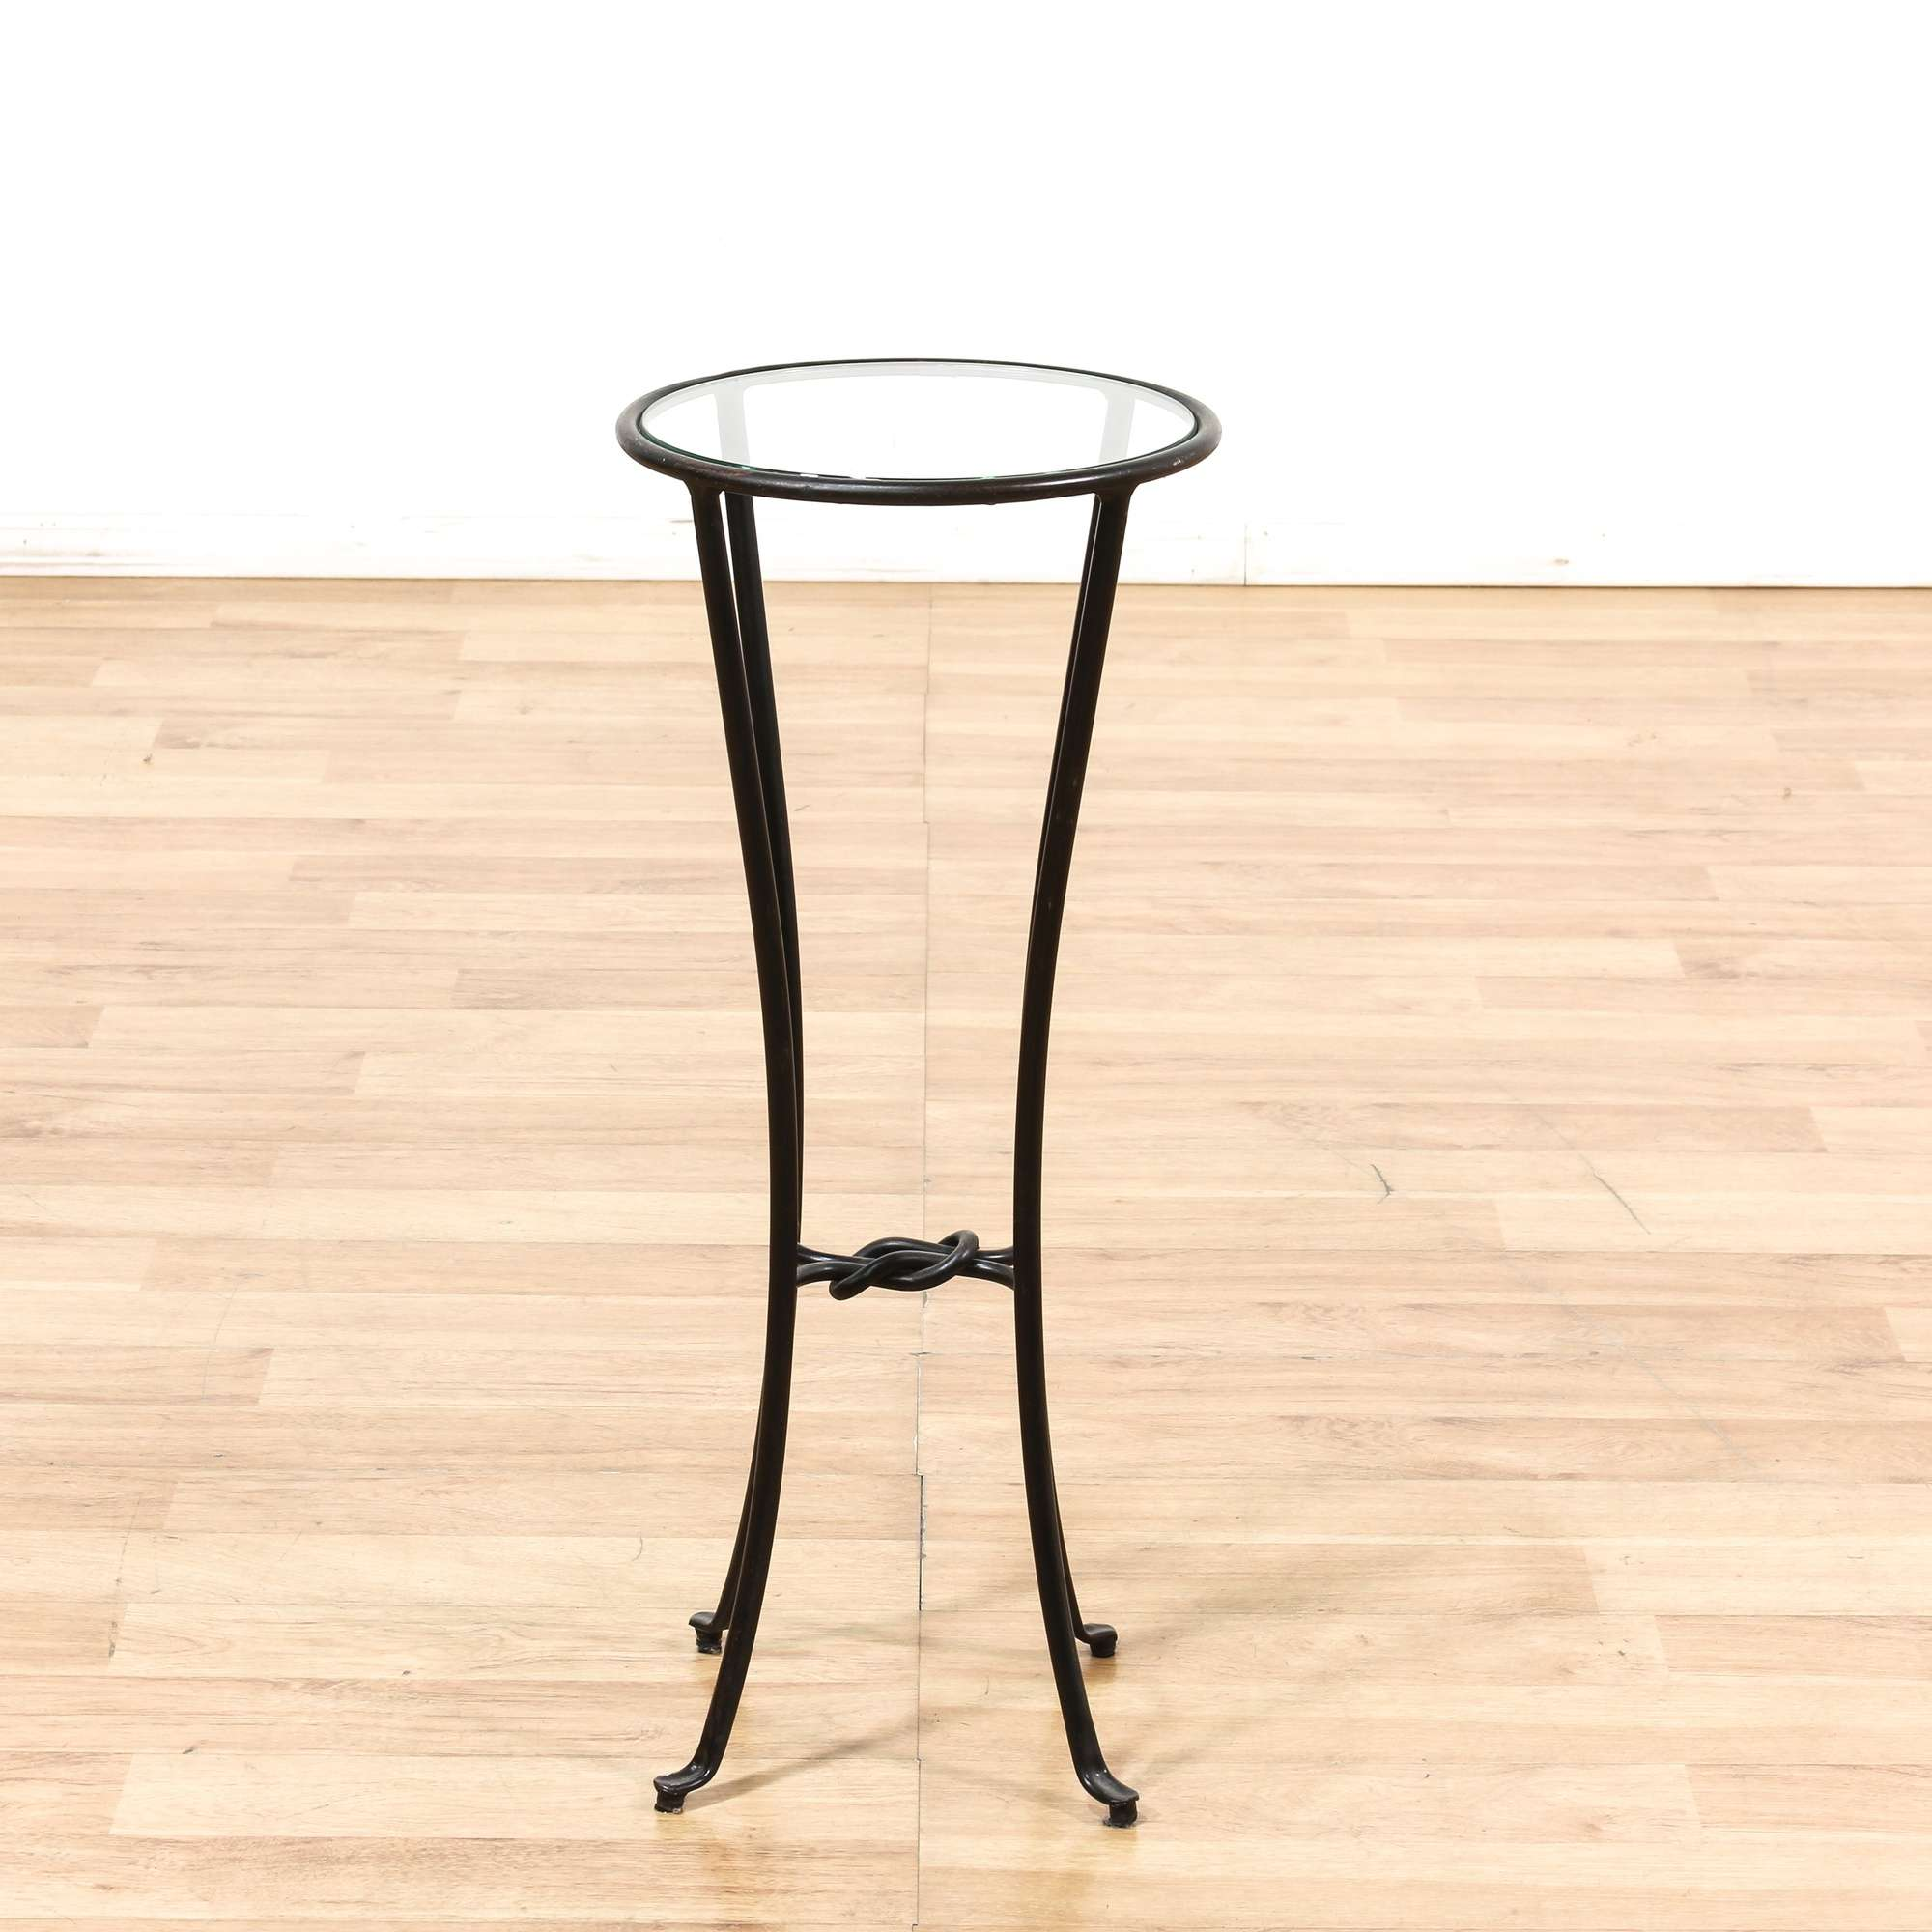 fresh glass plant stand tier round metal home indoor table accent top loveseat vintage furniture angele pedestal shelf mosaic knobs marble lamp outdoor white living room ideas